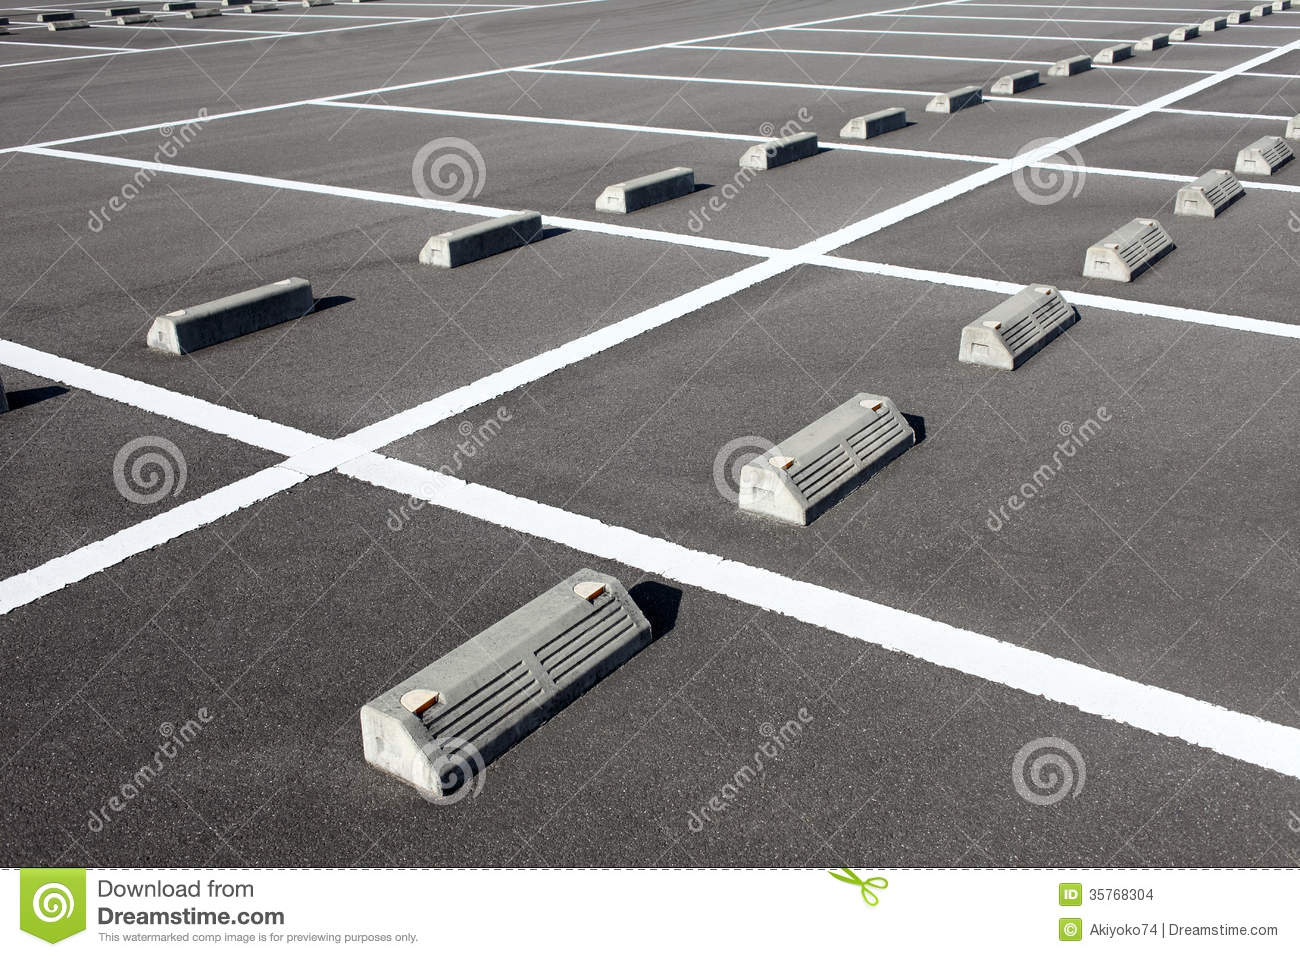 how to park a car in a parking lot tutorial